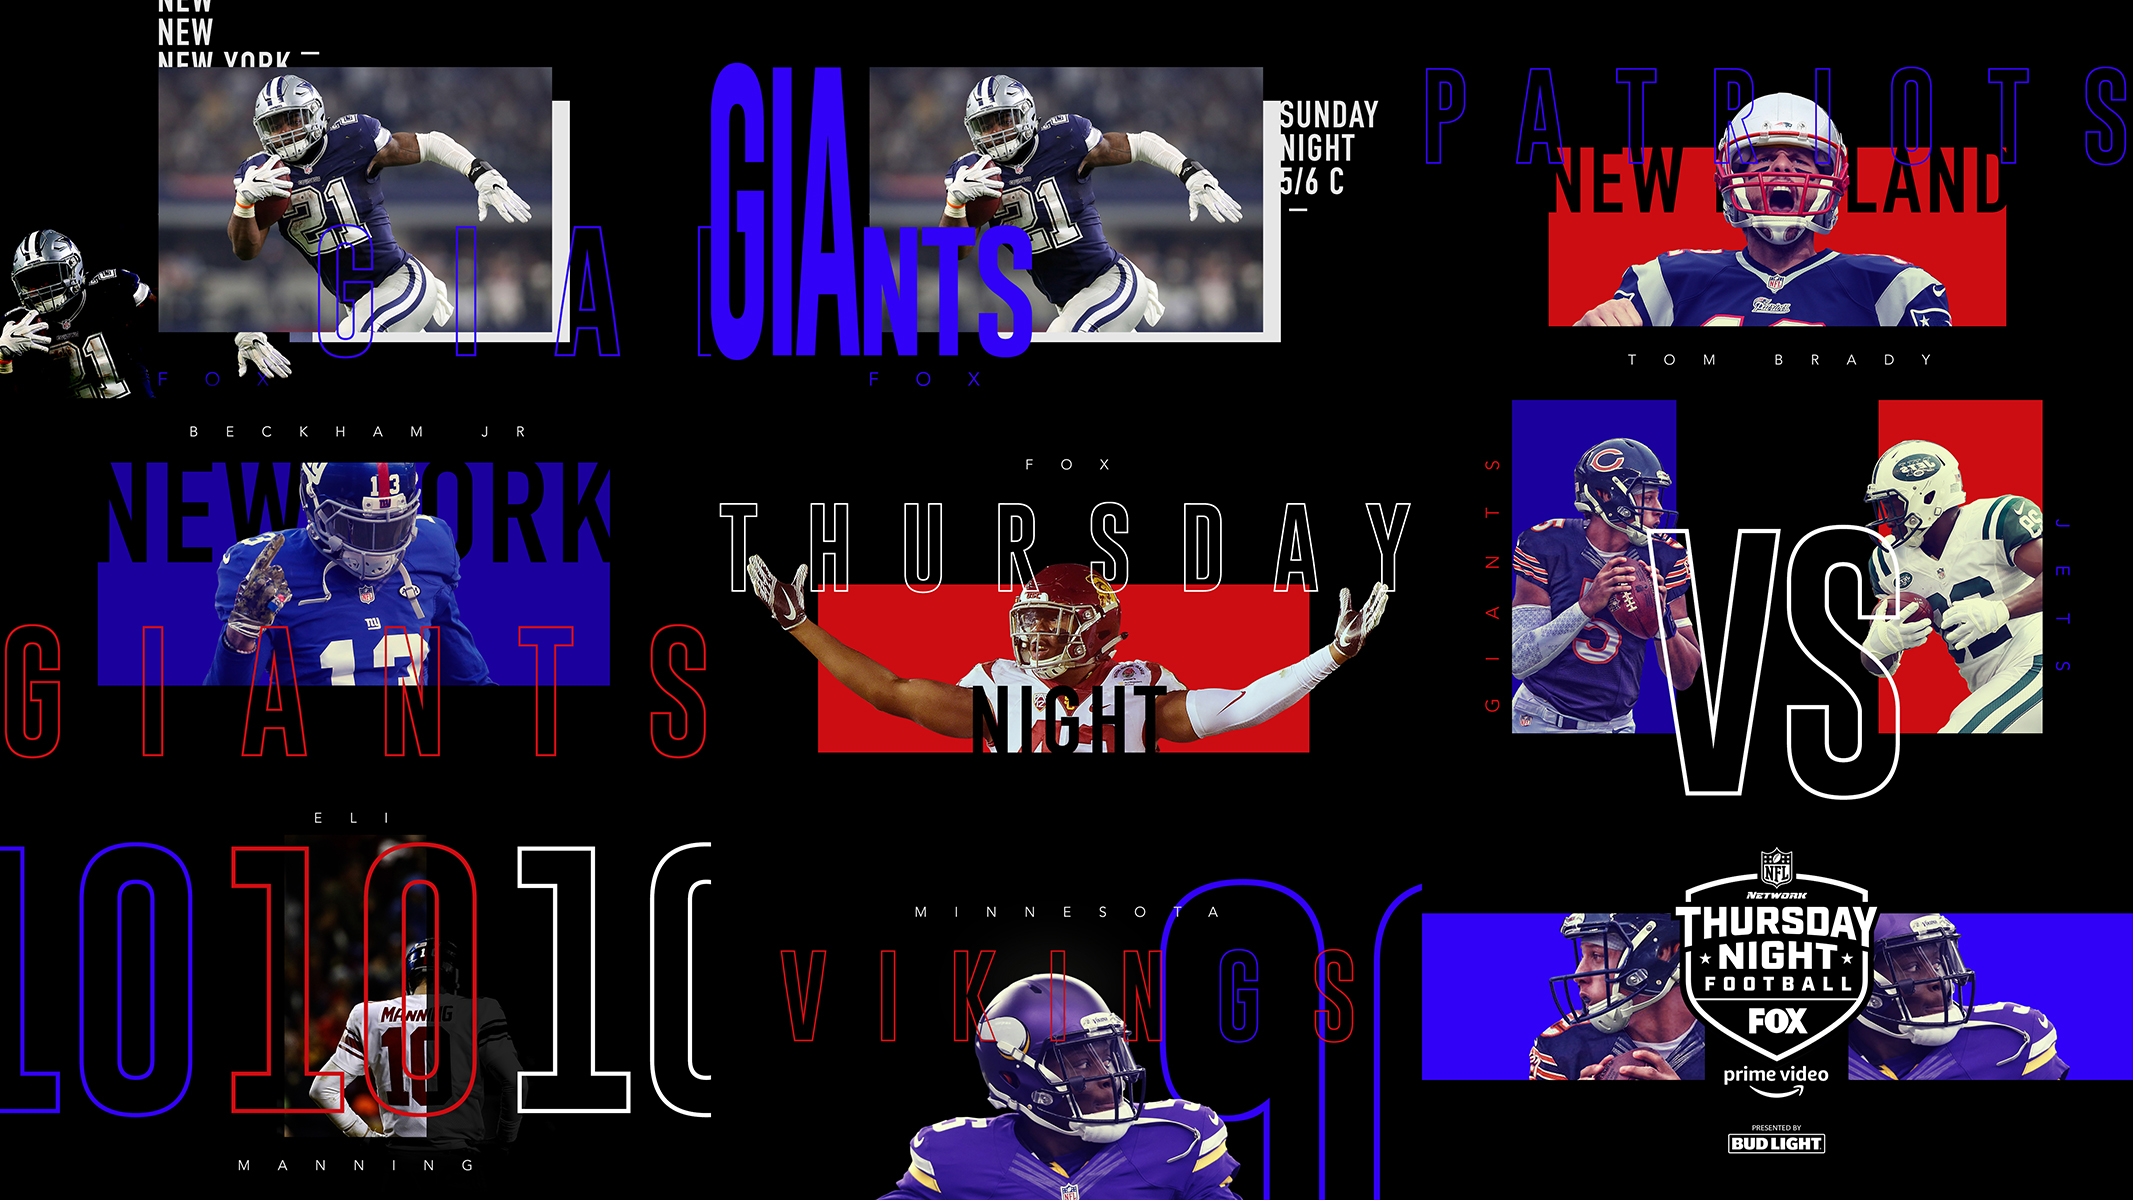 Fox_NFL_Design_Round01.jpg